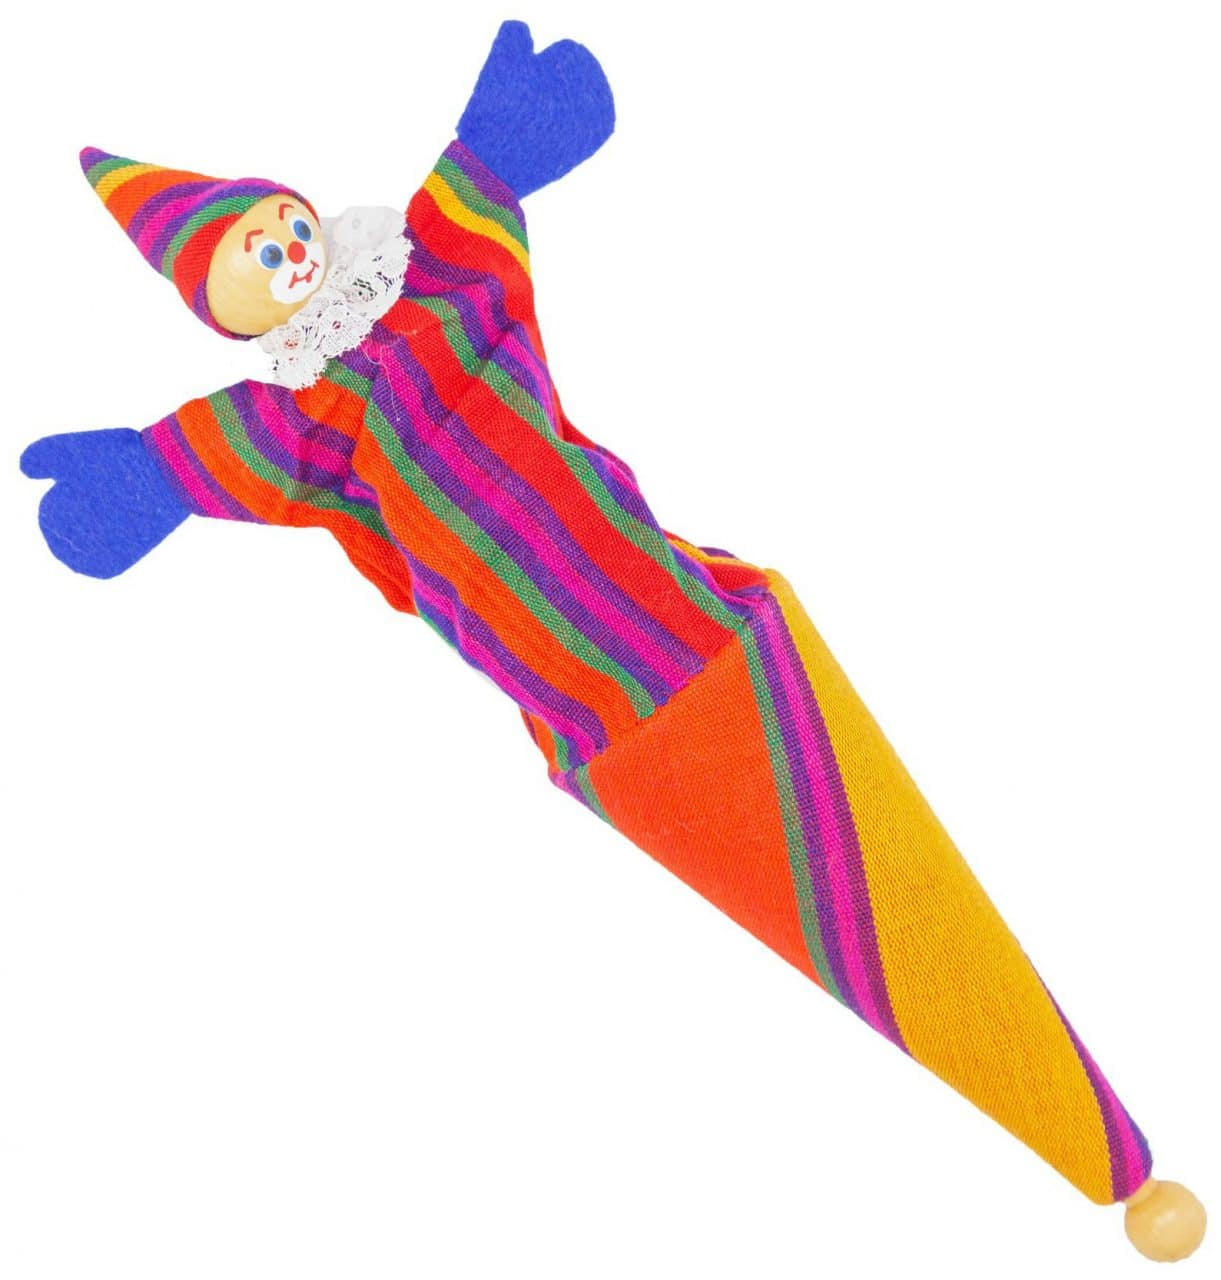 Pop-Up Clown Toy - A Variety of Colors